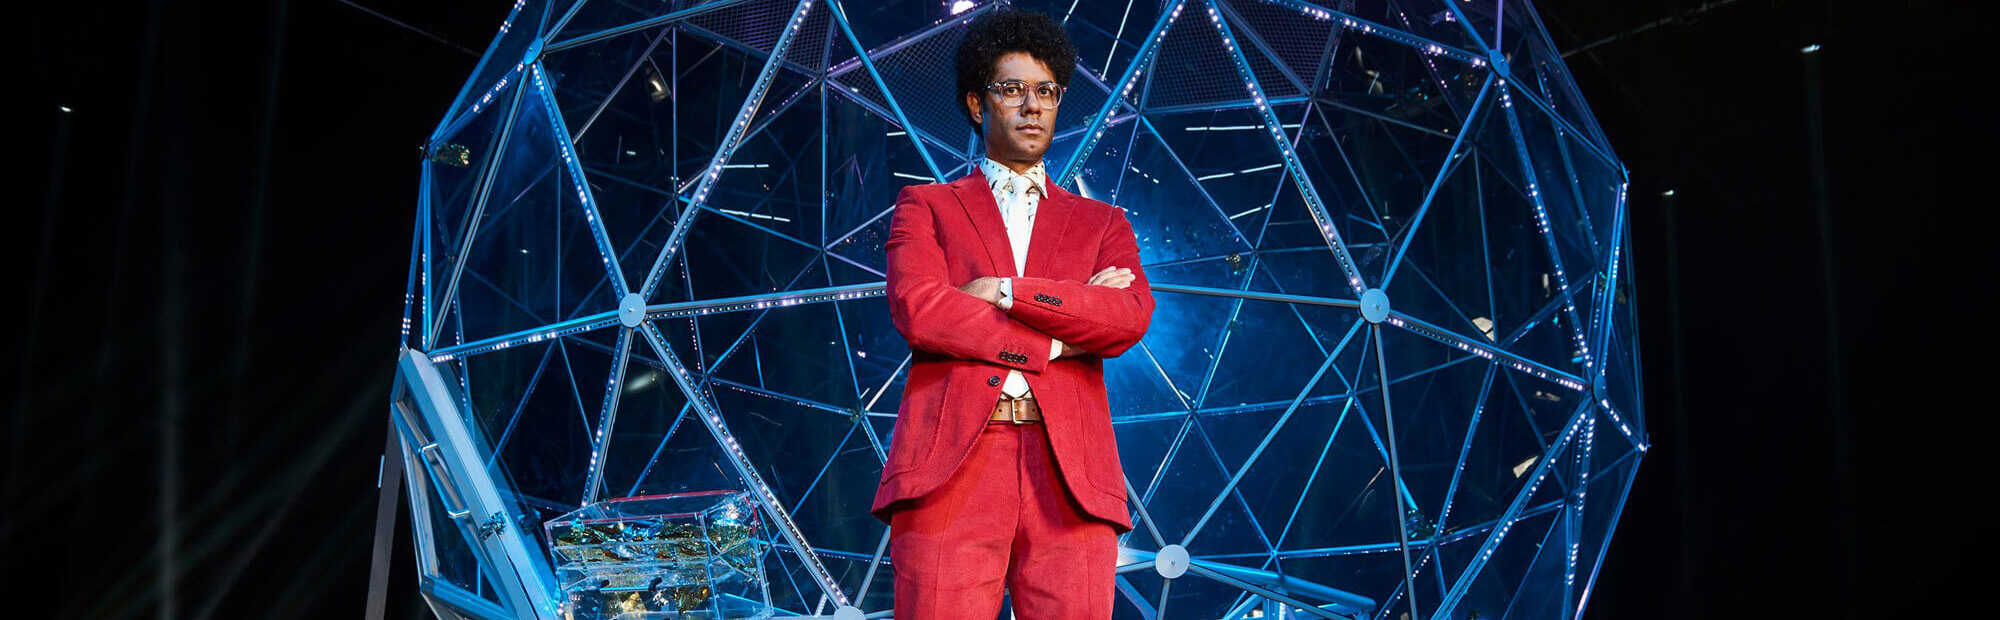 The Crystal Maze © Channel 4